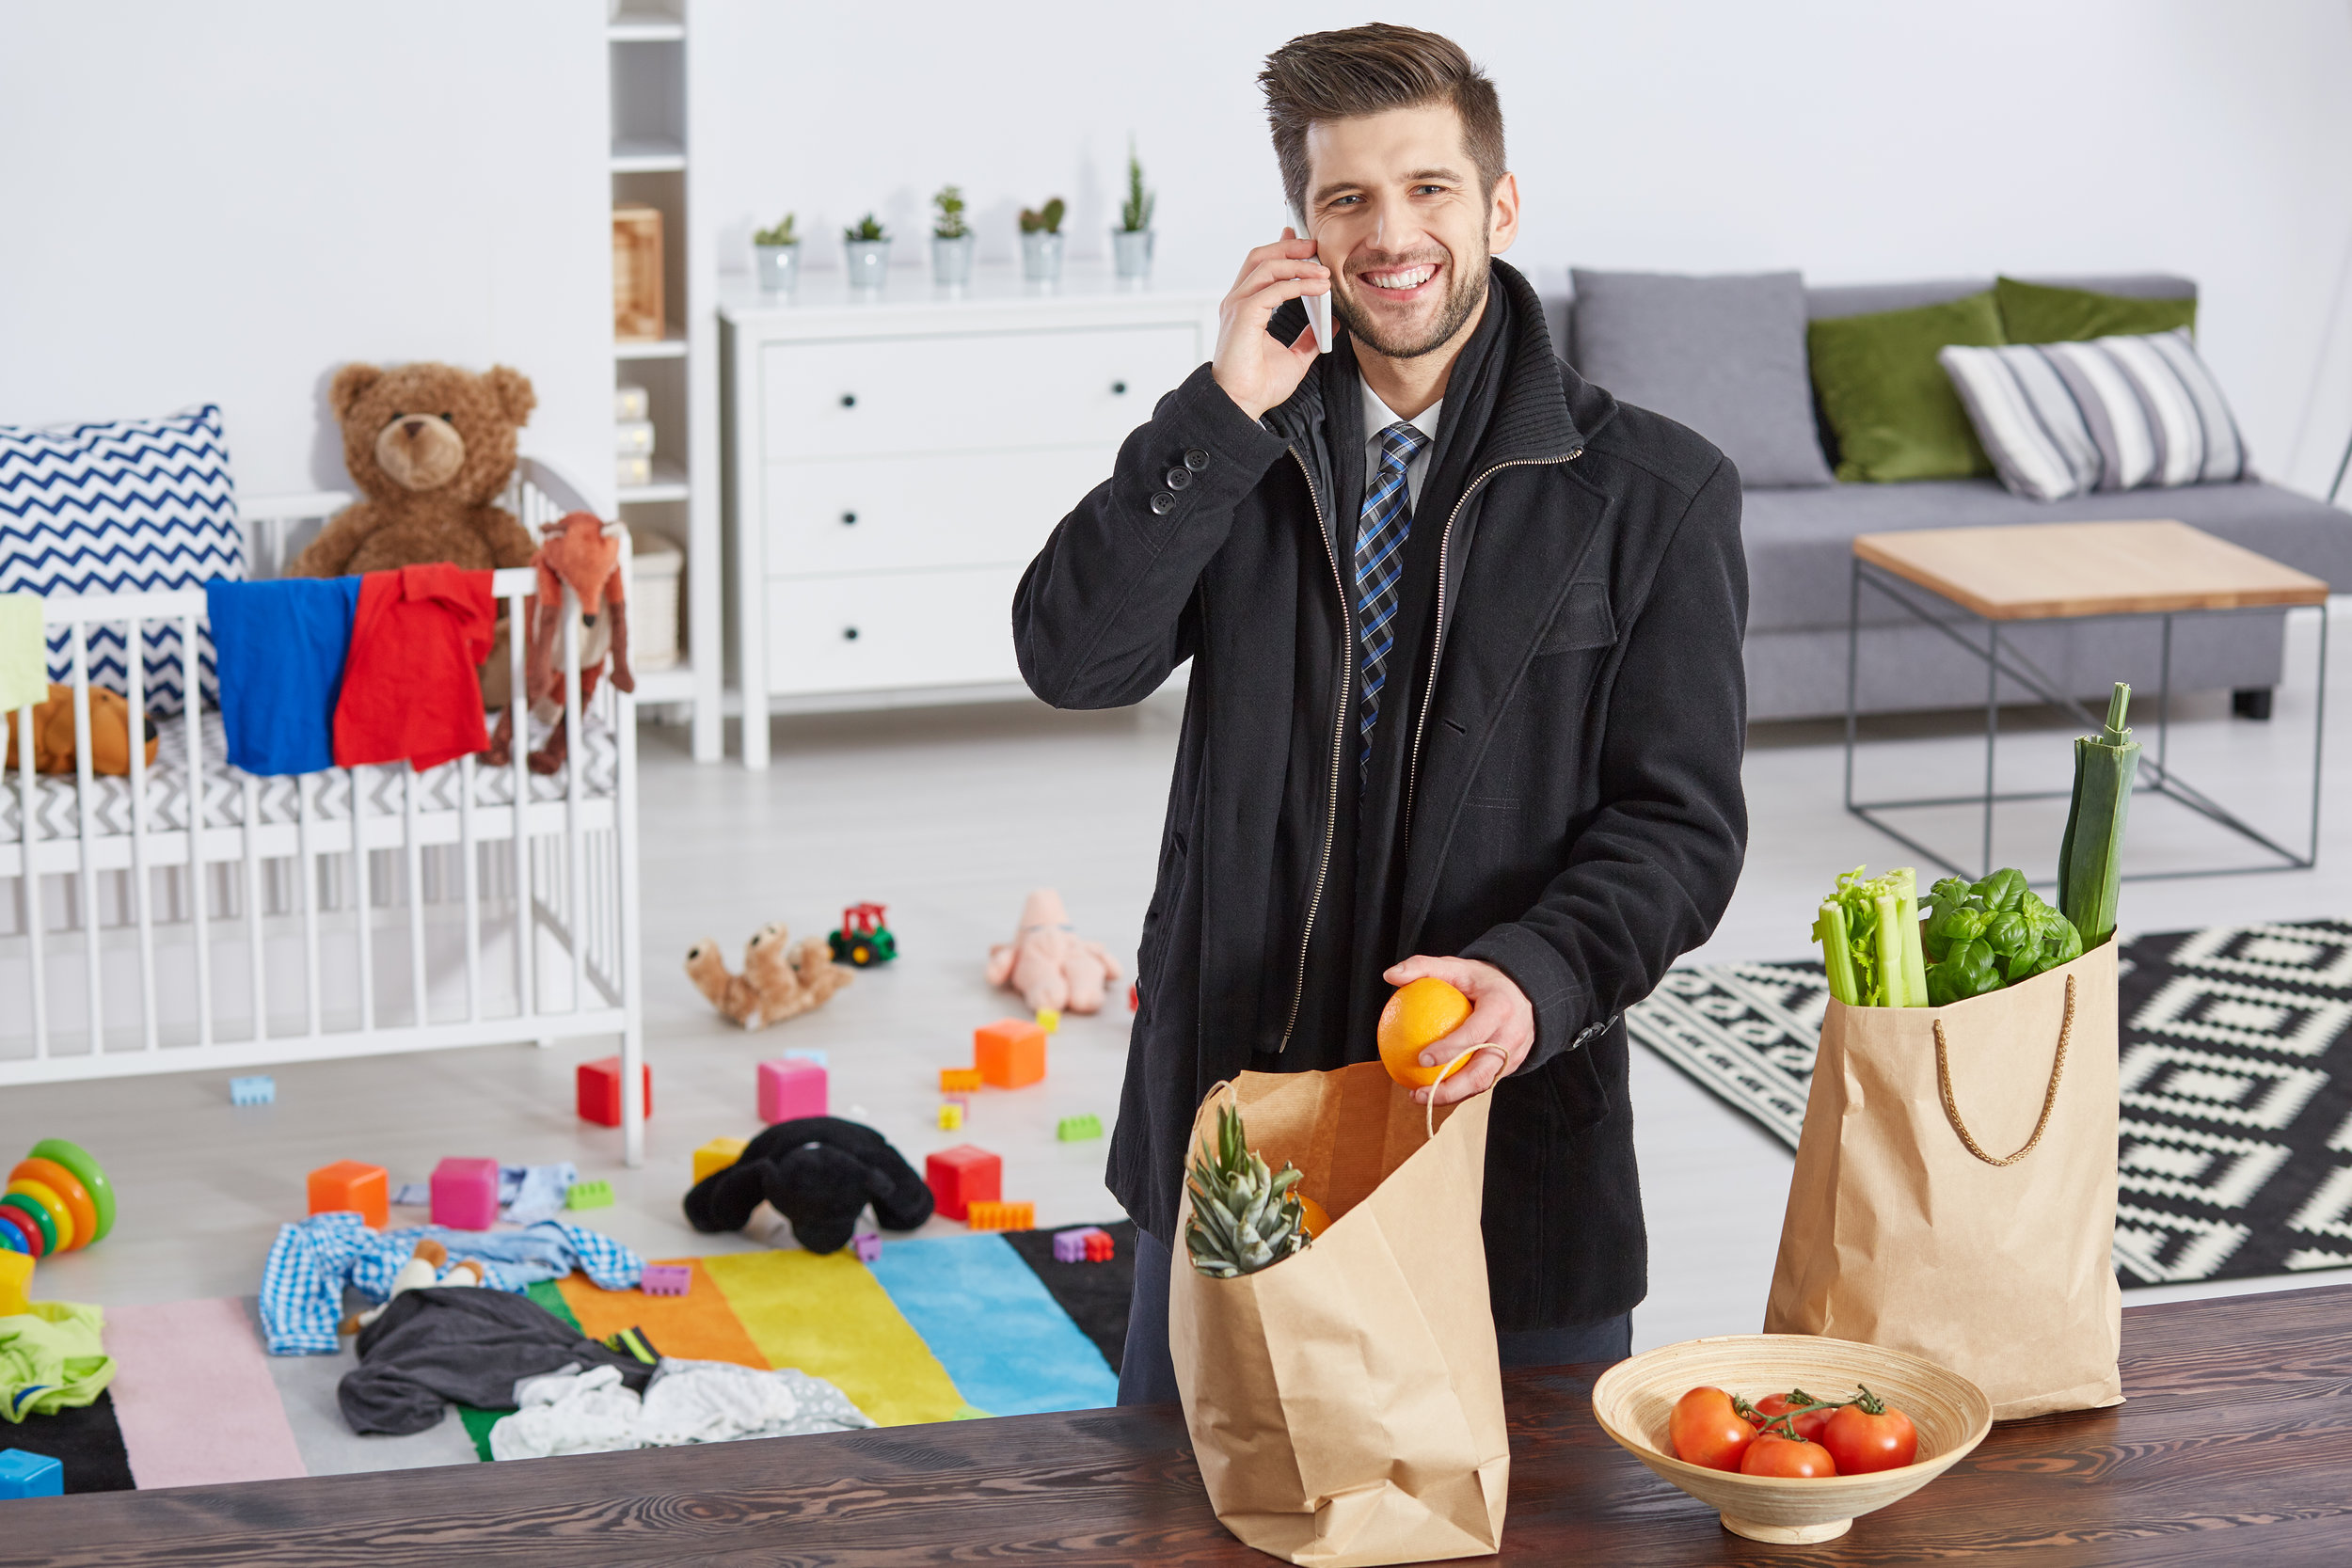 content-father-with-shopping-bags-PM4WV3P.jpg